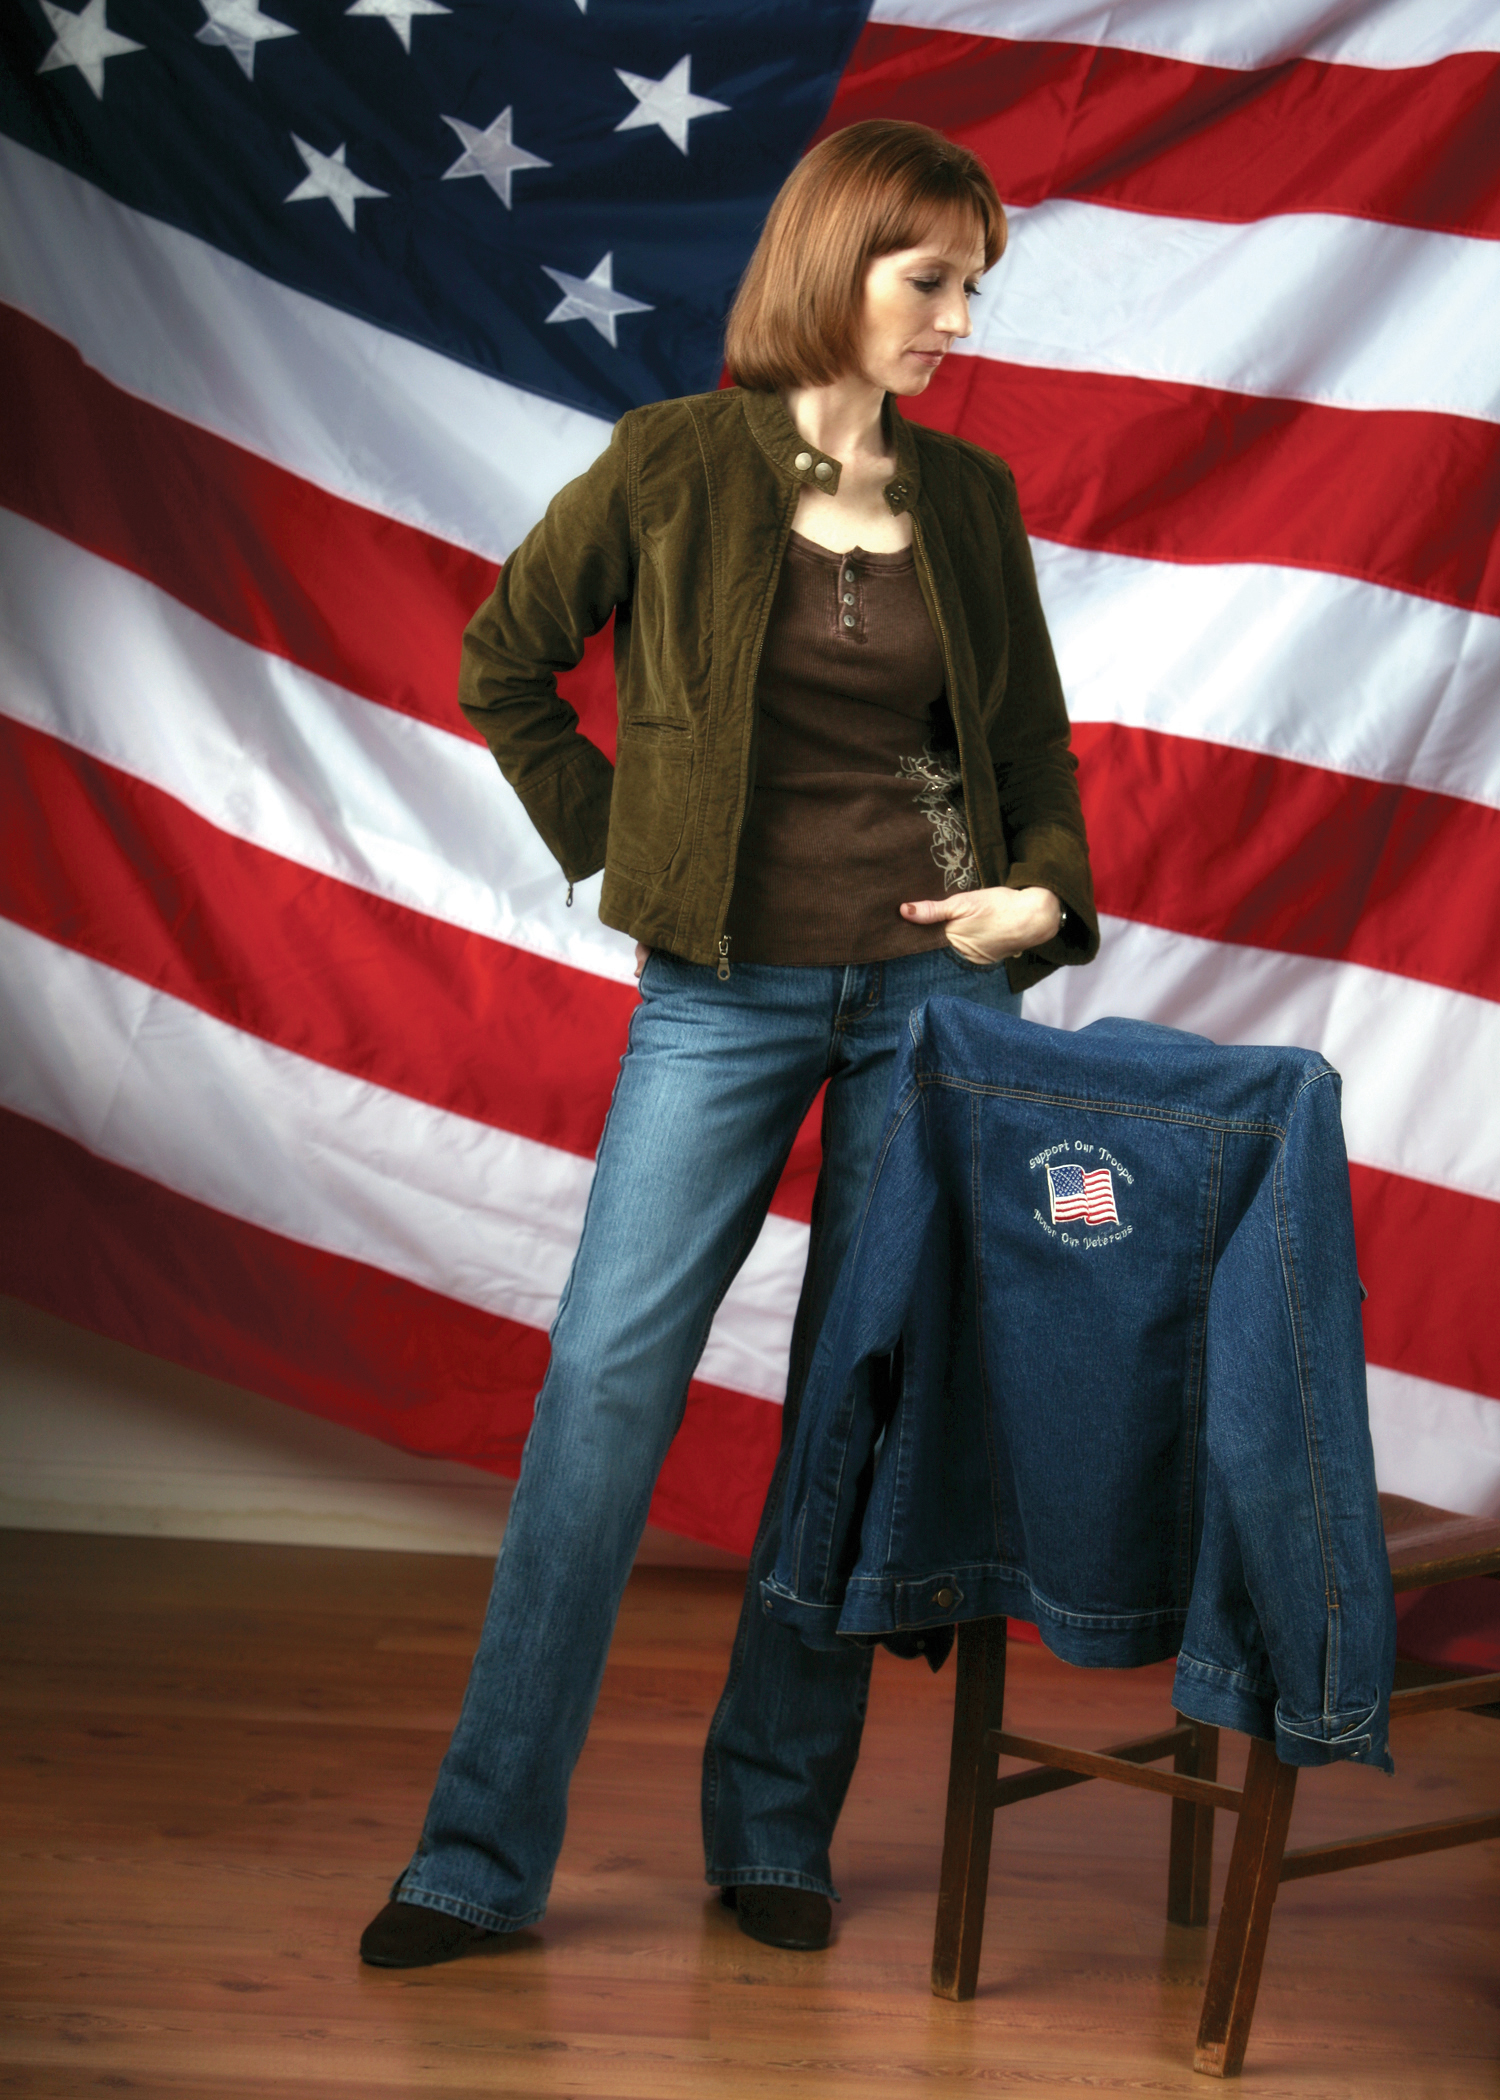 On the Beat: Sandy Riggers brings patriotic country to veterans